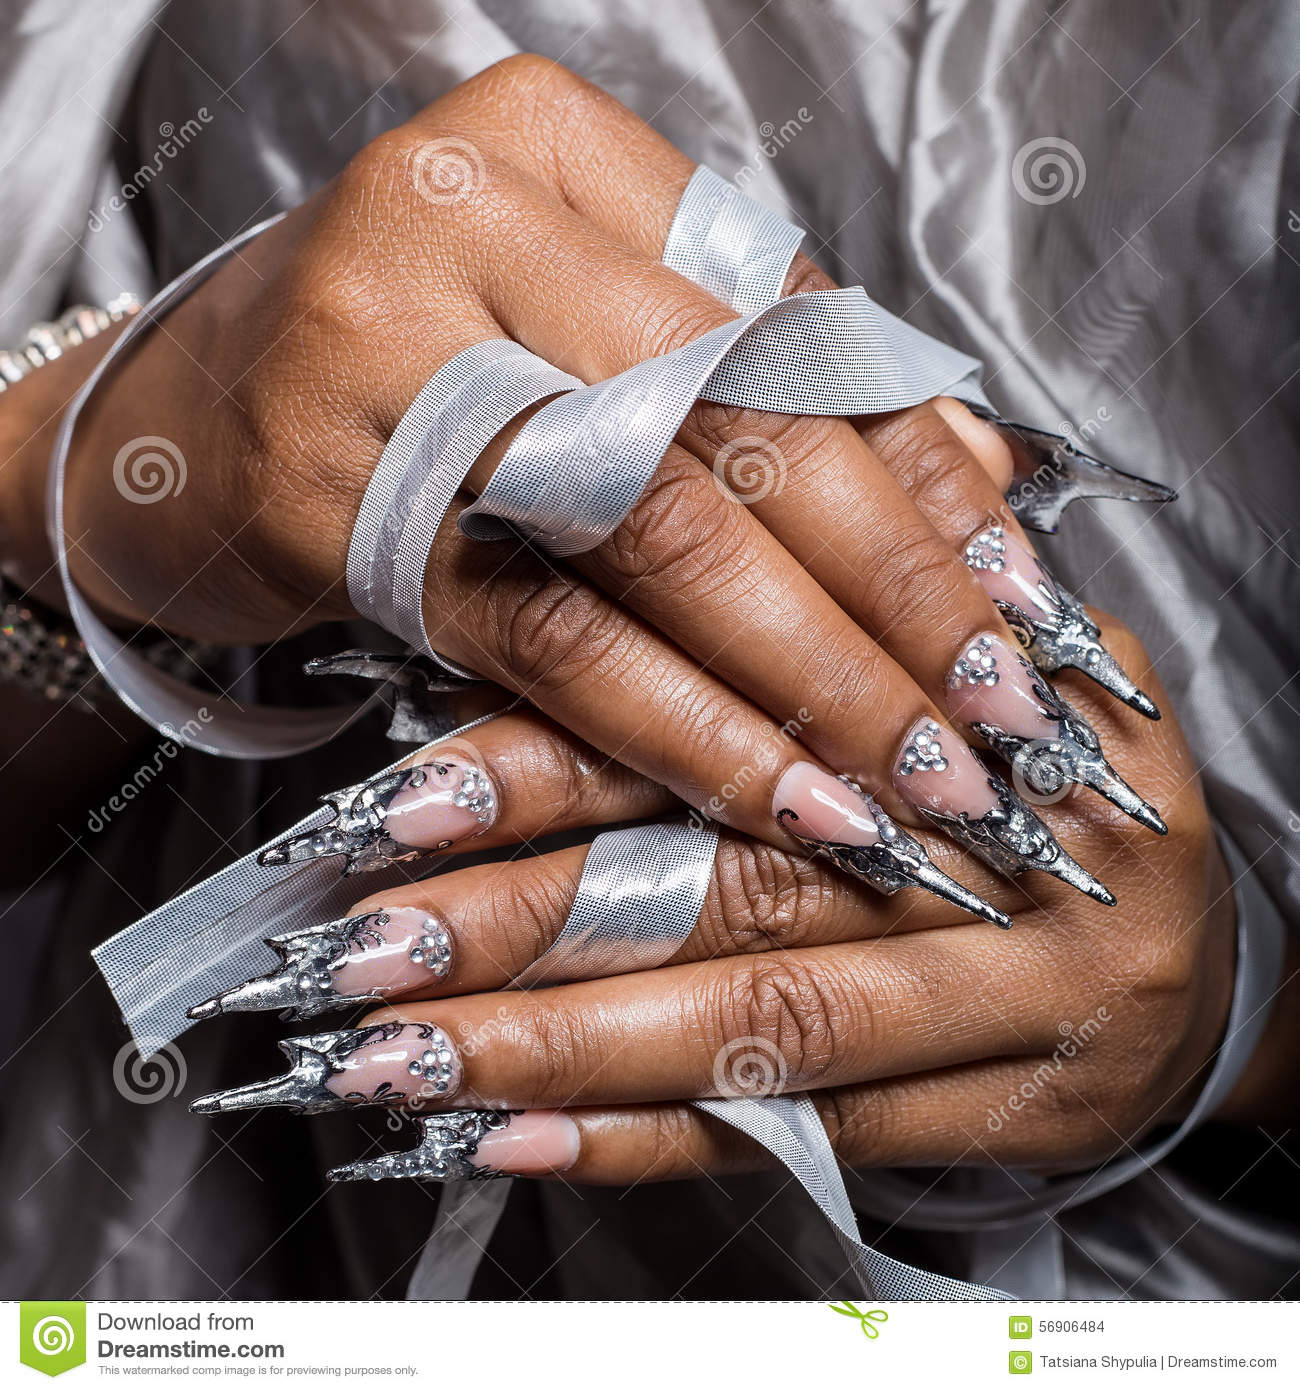 Beautiful Hand Of The Girl With Dark Skin Graft Acrylic Nails Nail Unusual Fotmoy Brunette Care